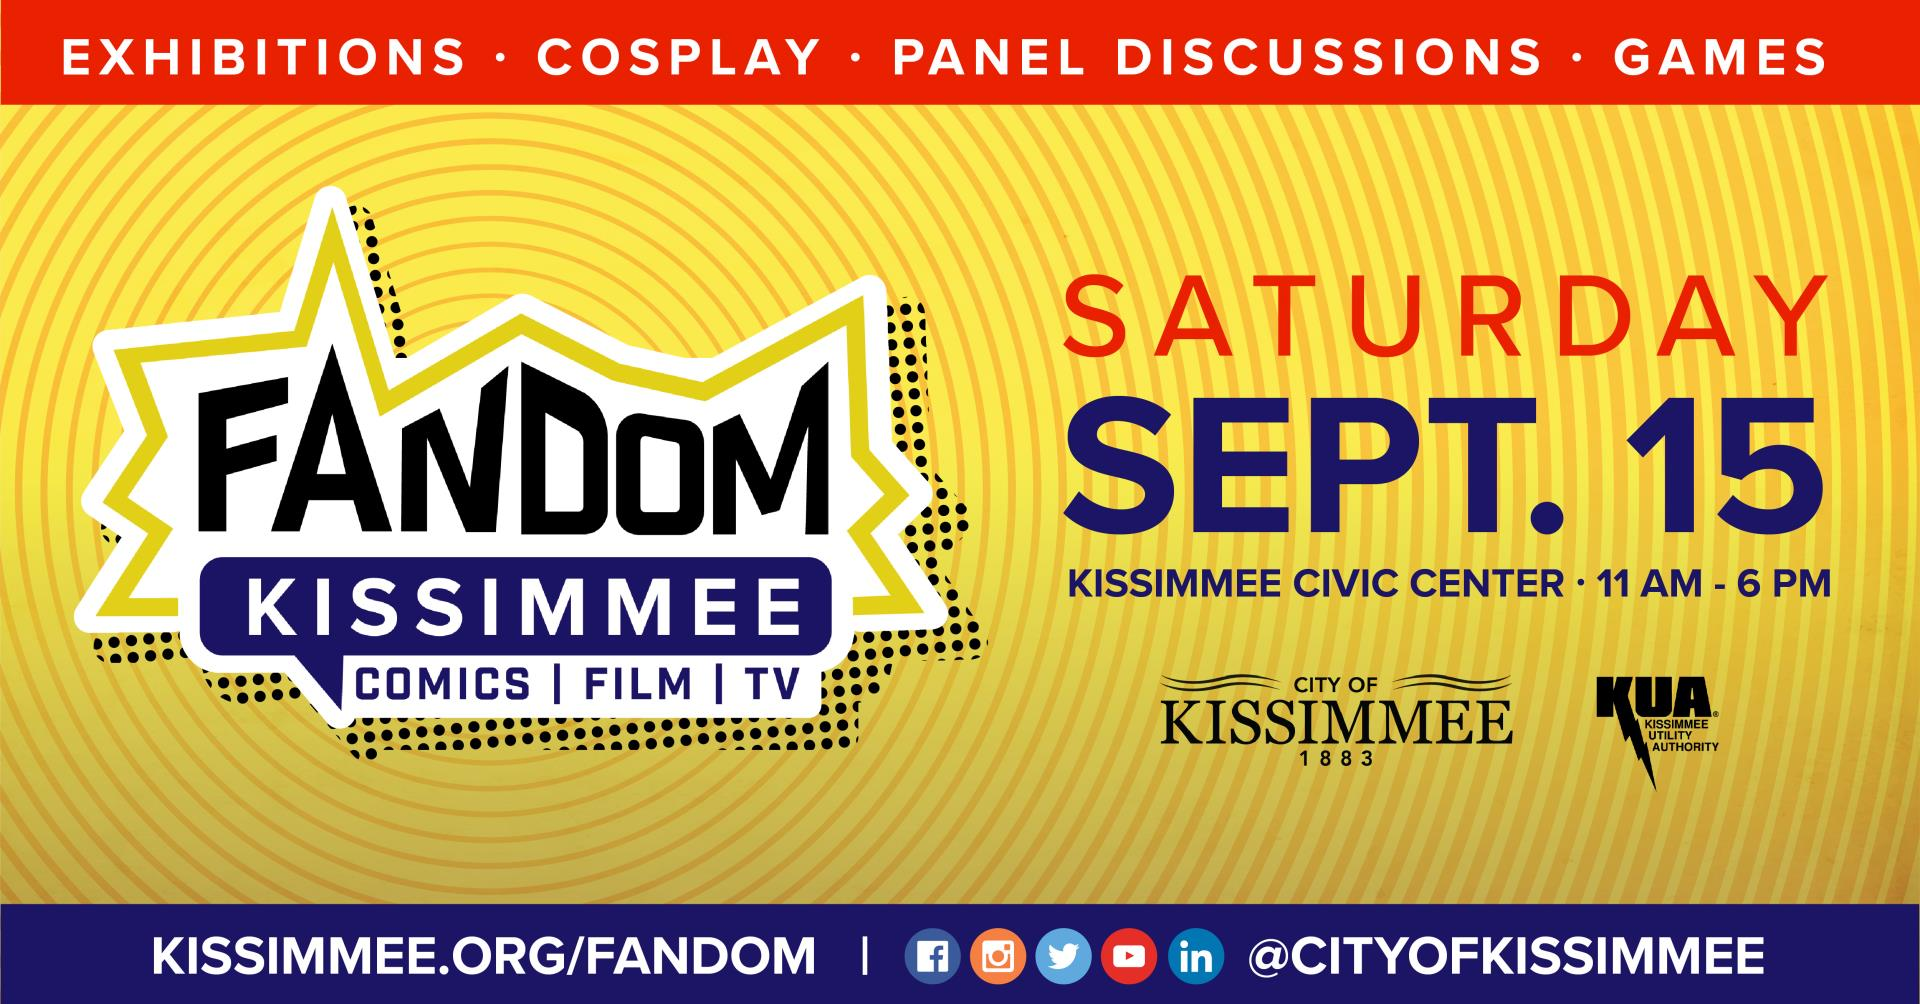 Fandom Kissimmee event flyer City of Kissimmee